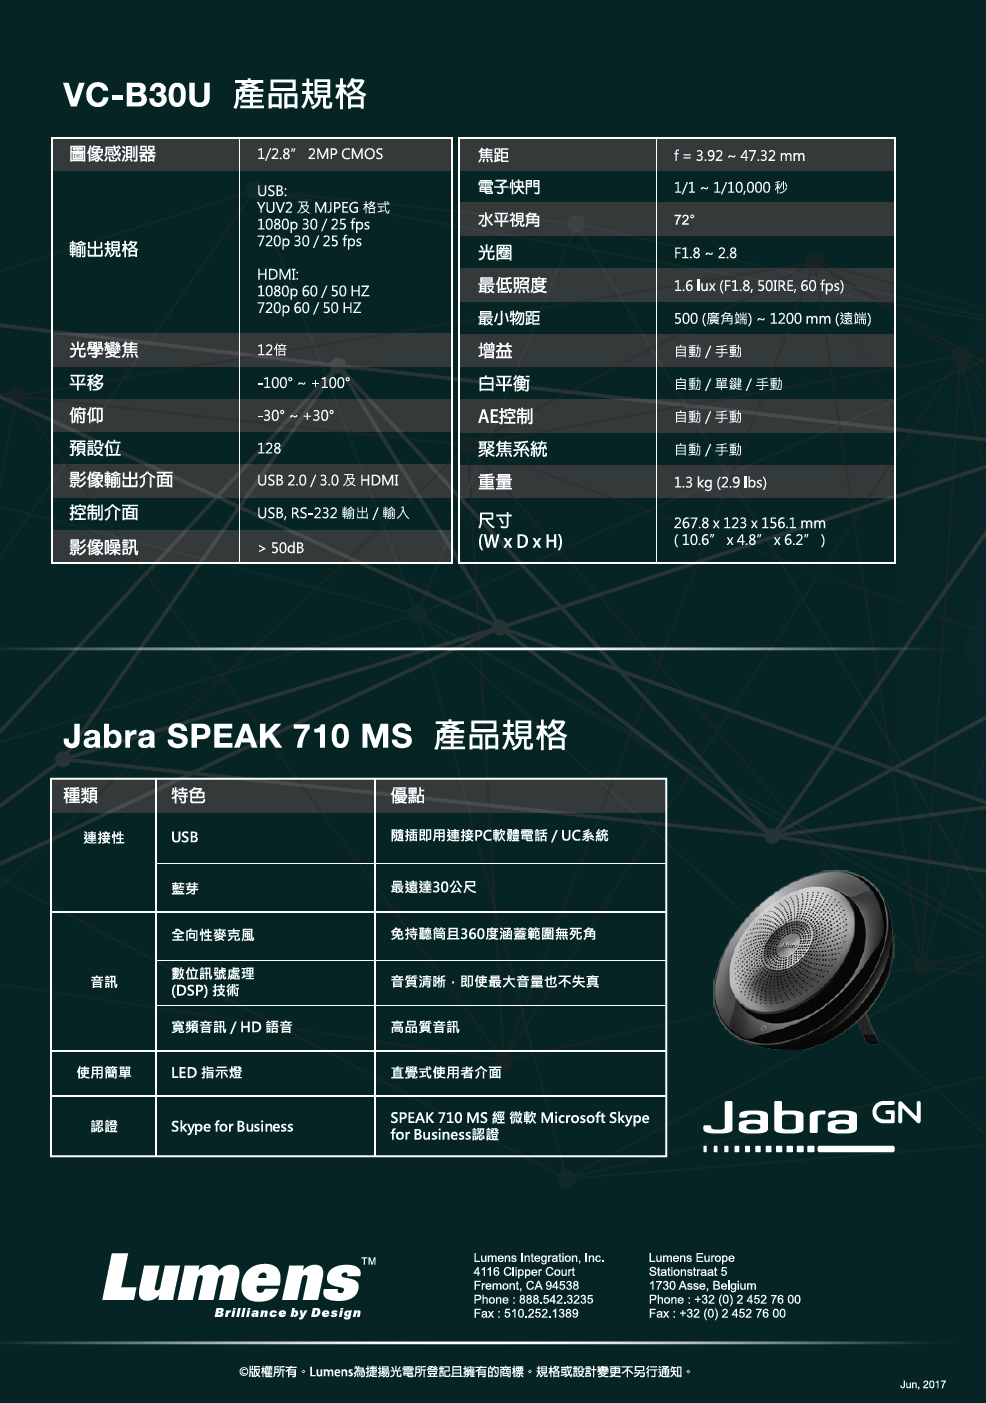 VC-B30U_SPEAK710主要特性.PNG